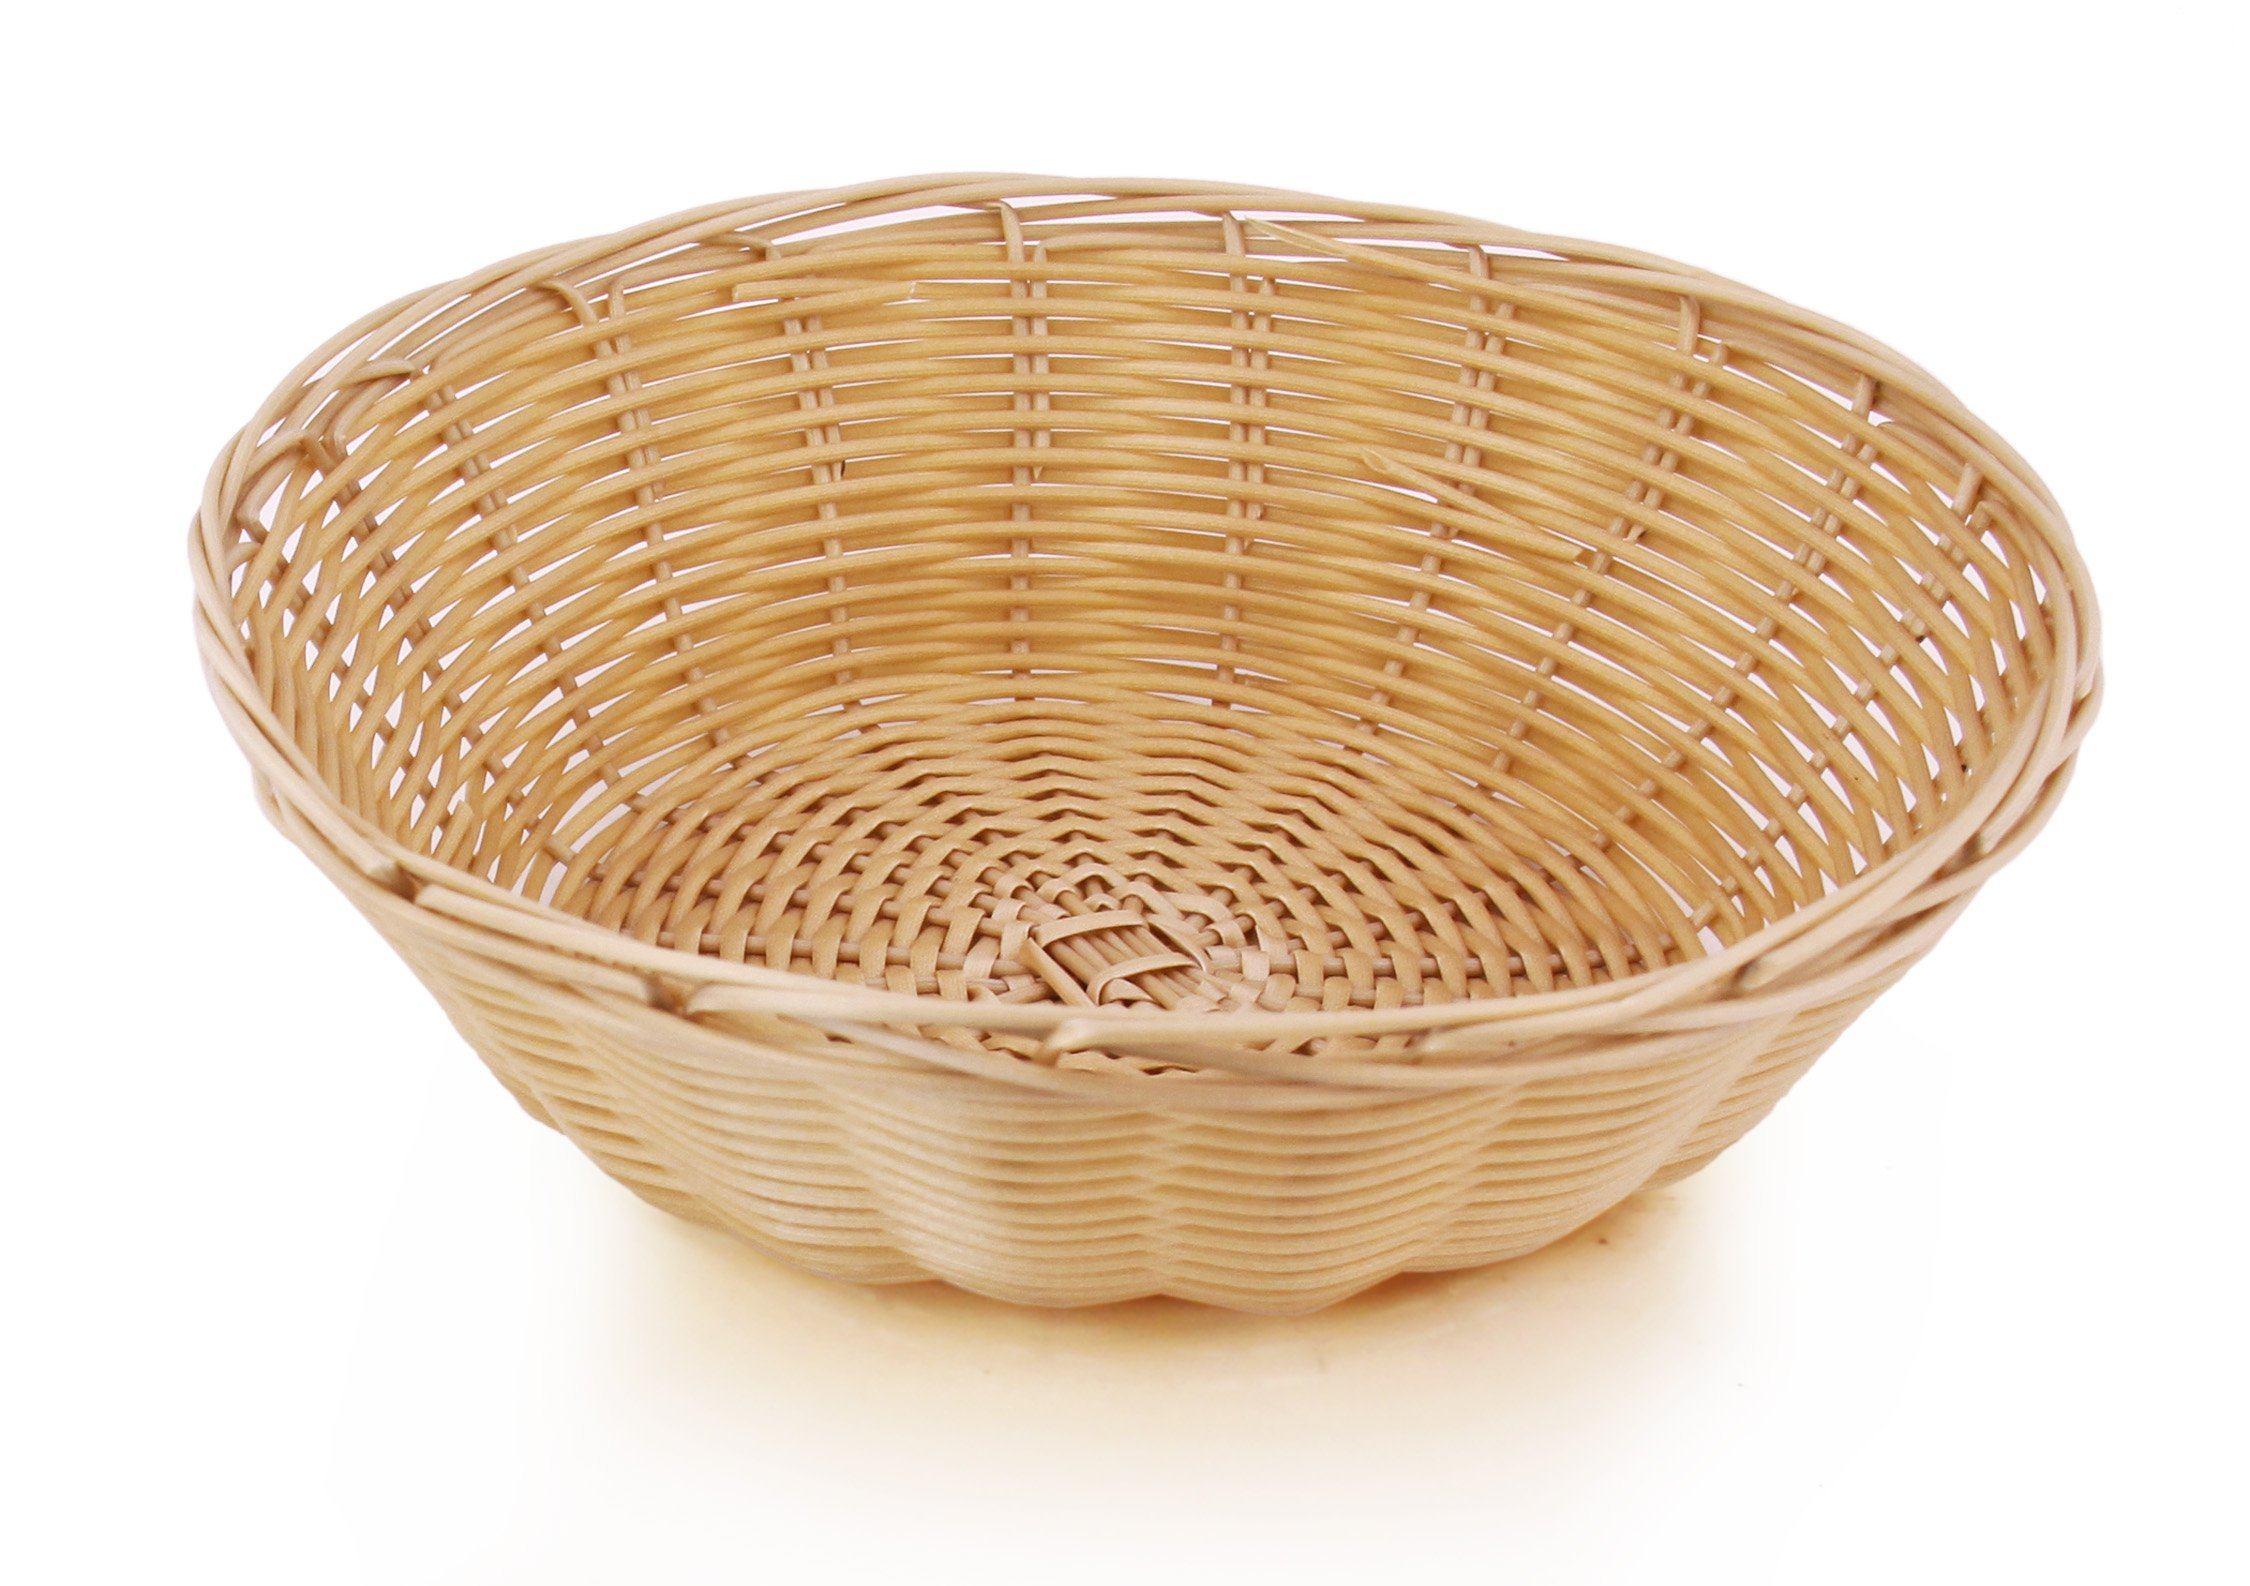 New Star Foodservice 44201 Food Serving Baskets 9 x 2.75 inch Round, Hand Woven, Polypropylene, Set of 12, Natural